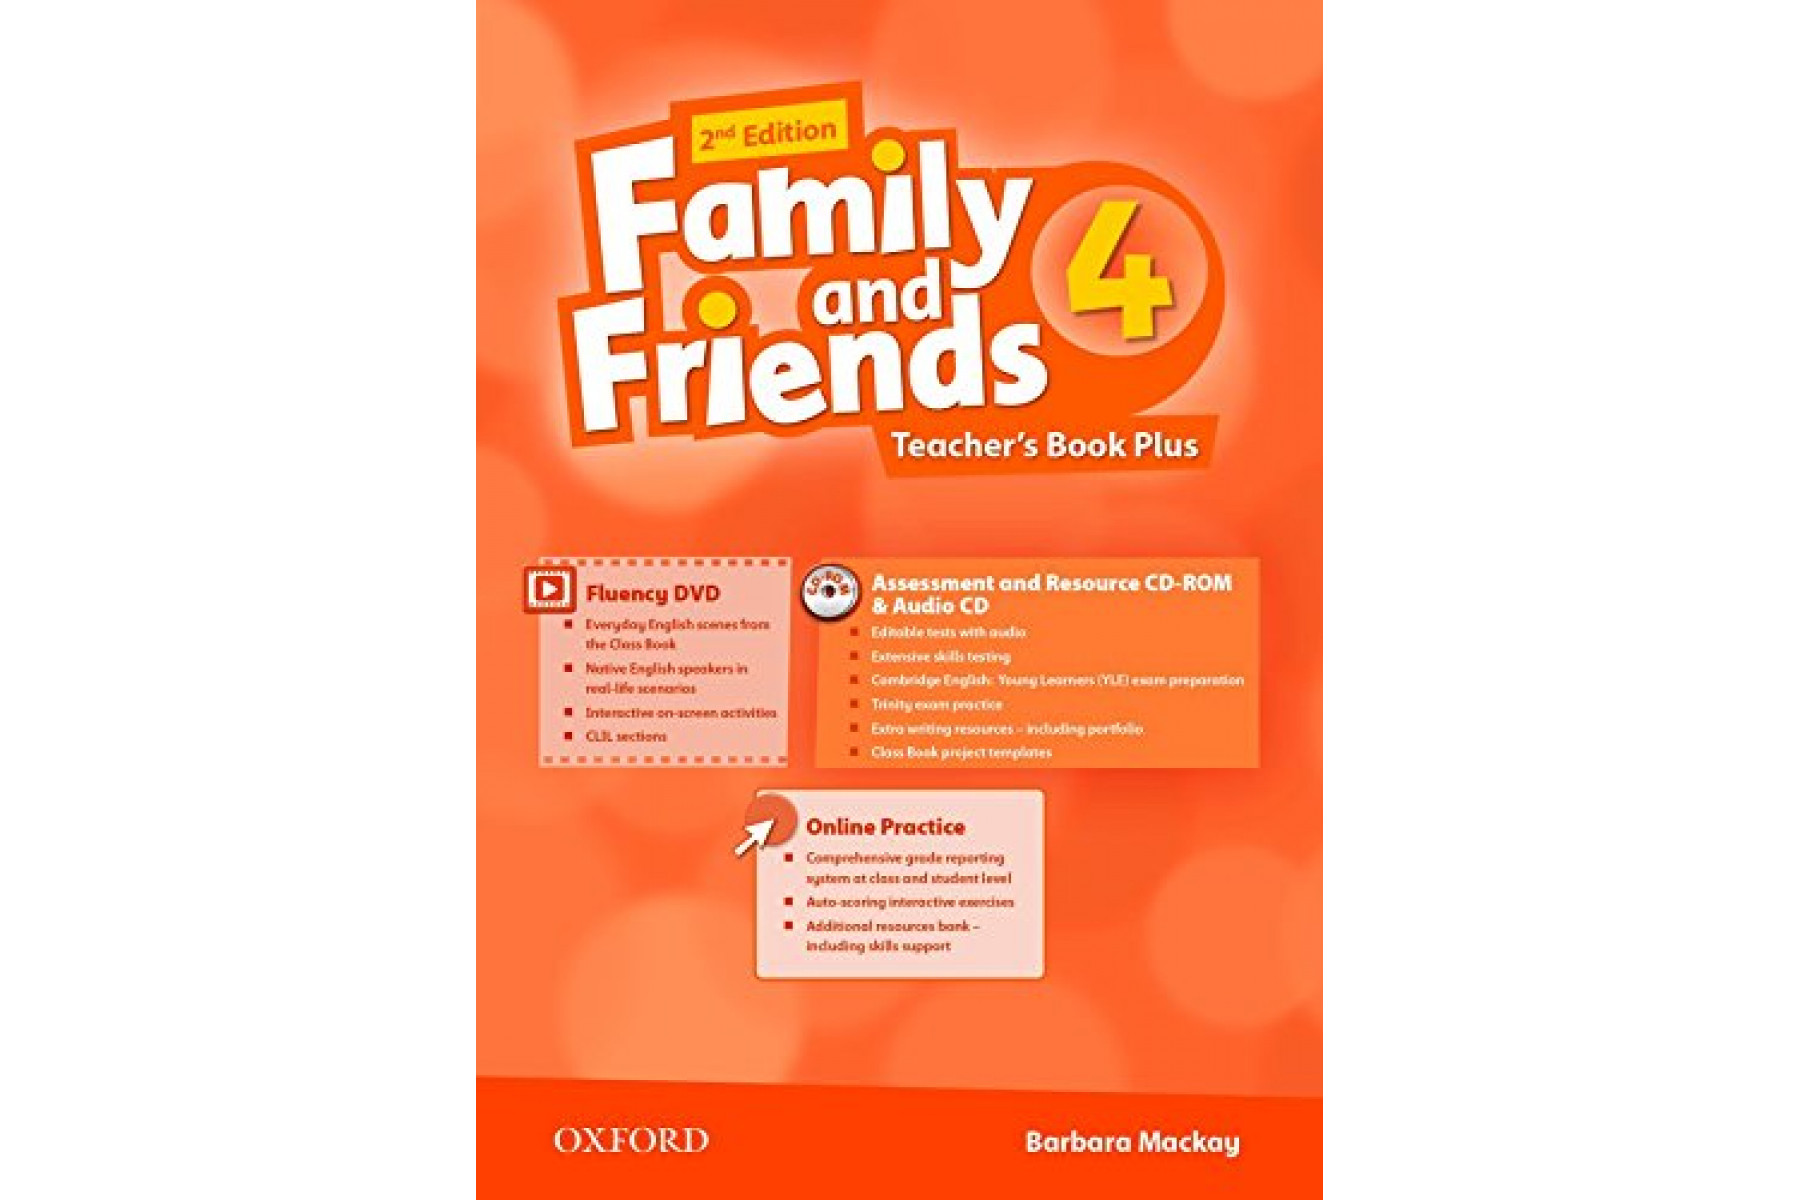 Family and Friends 2nd Edition 4: Teacher's Book Plus